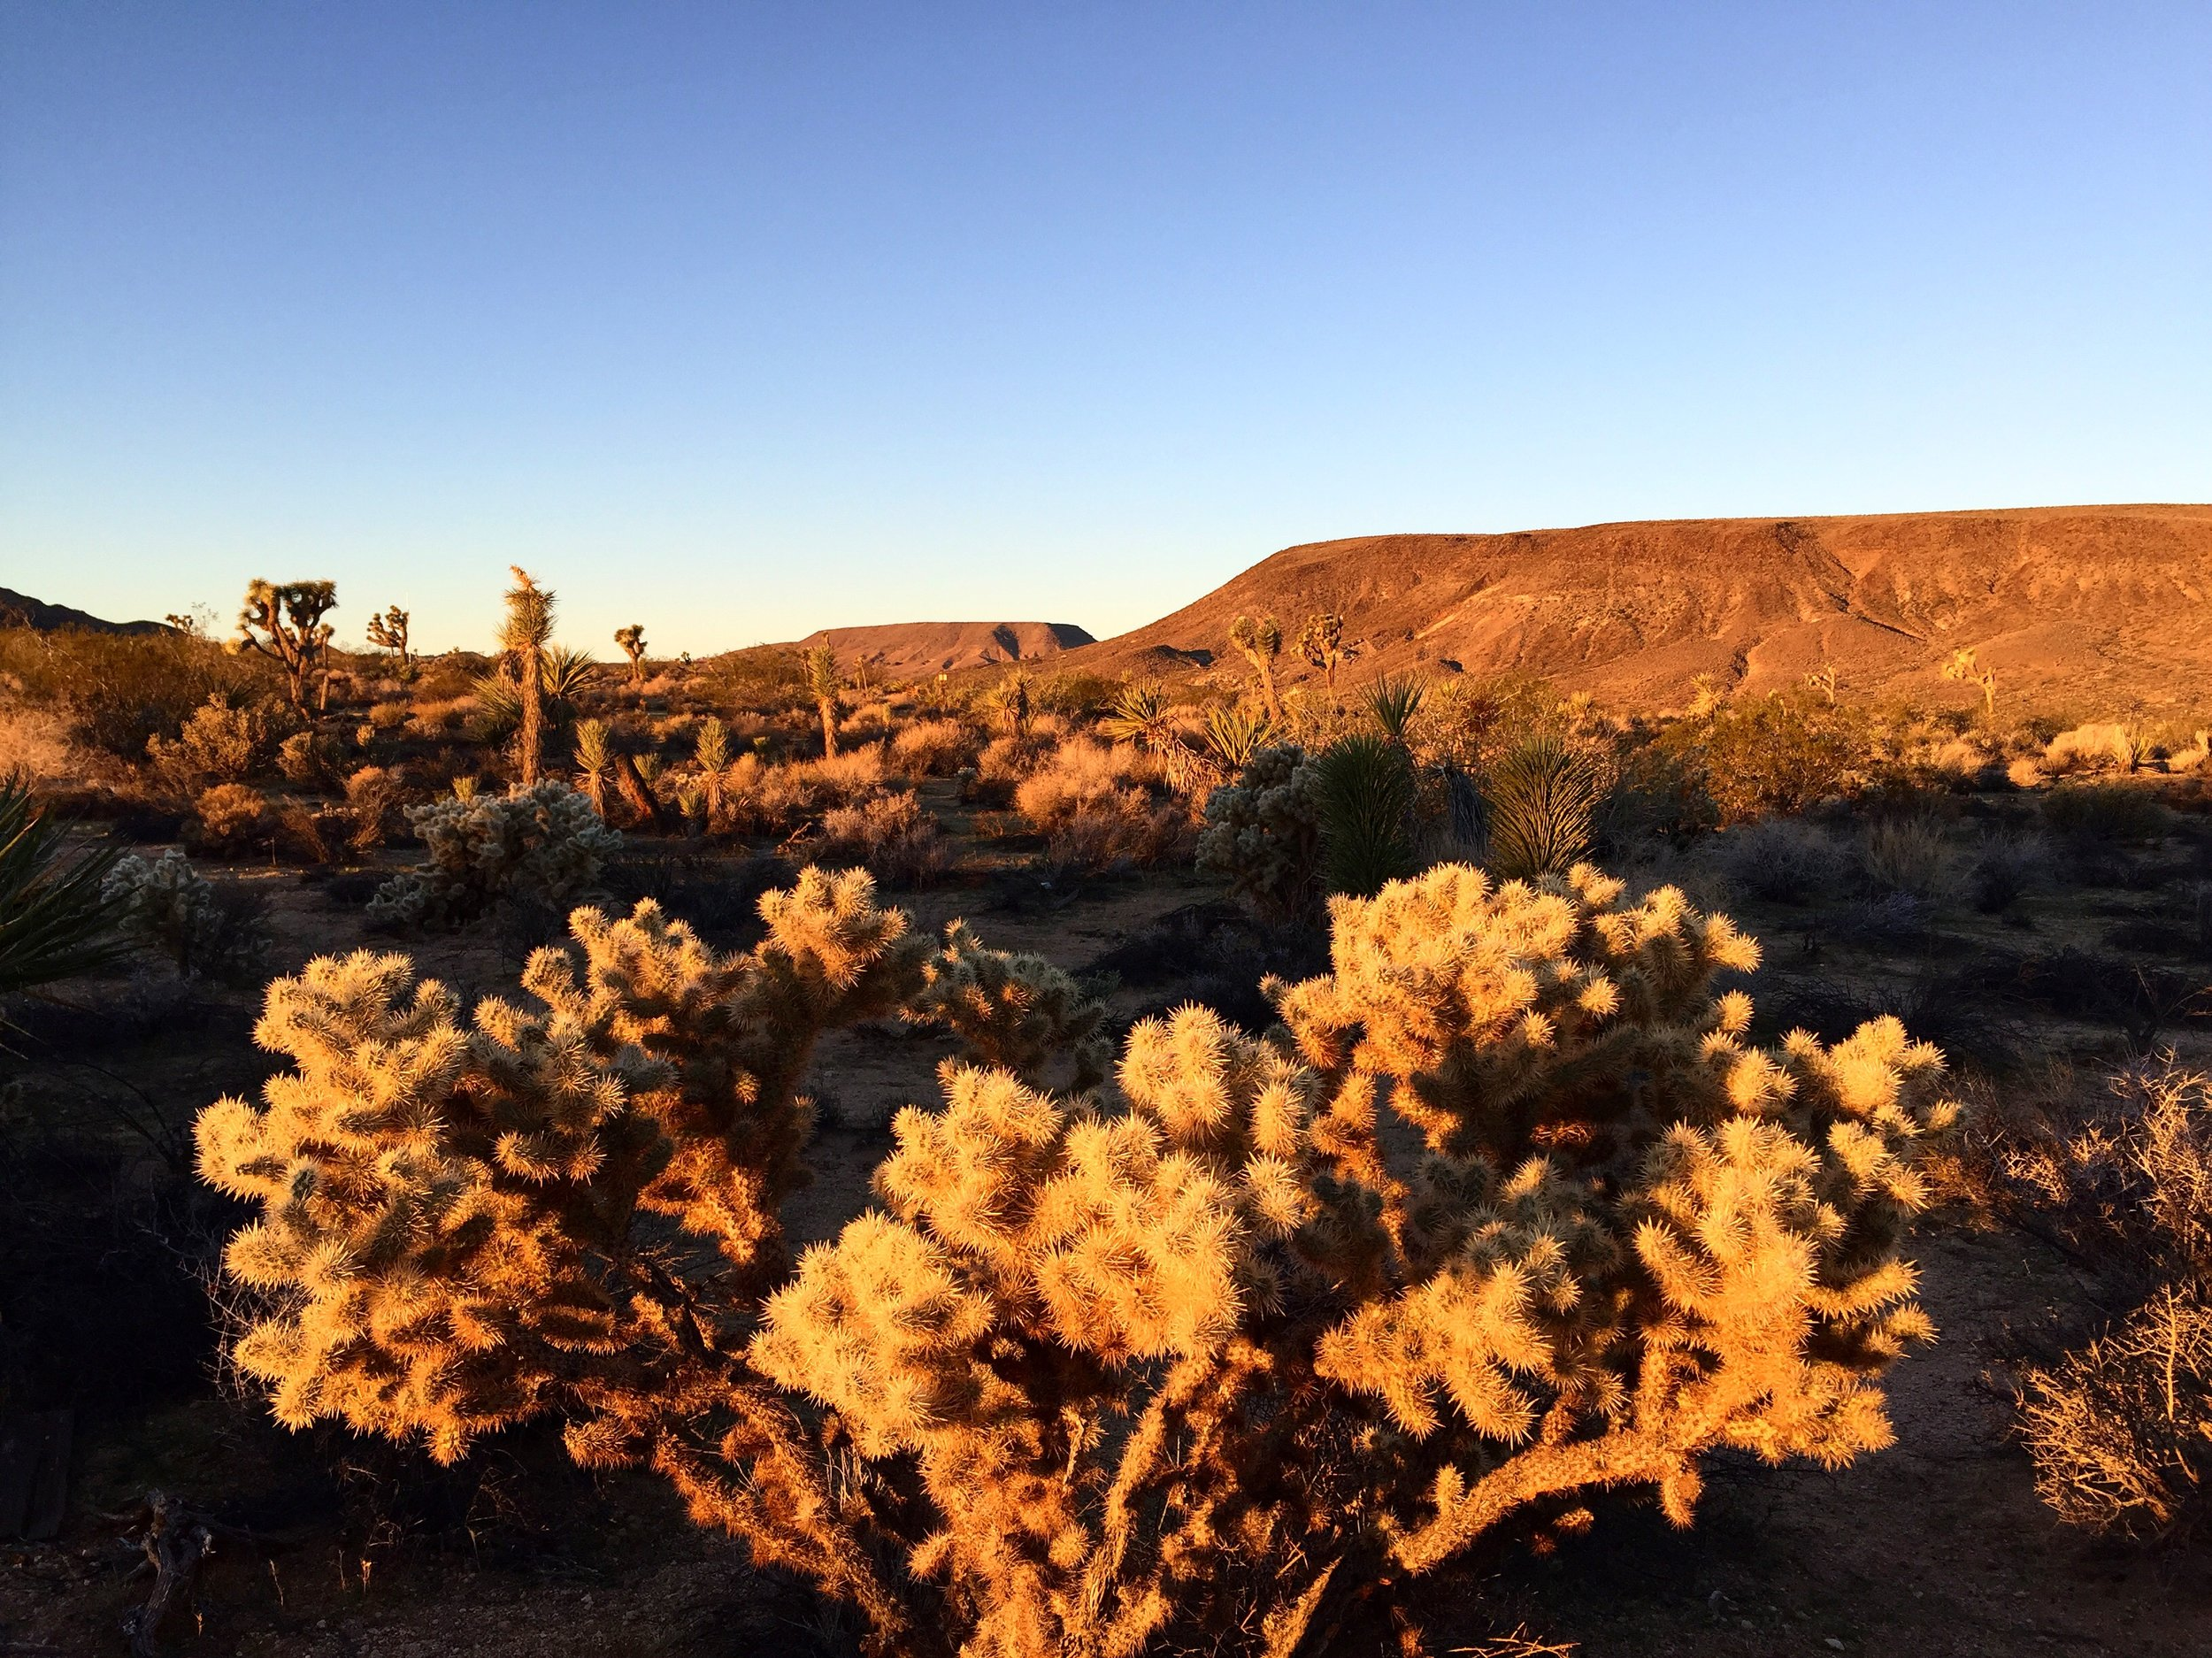 Last light of the year on the cholla outside our back door. I'm holding my daughter who's watching the dog who's chasing a rabbit over the threshold of January.